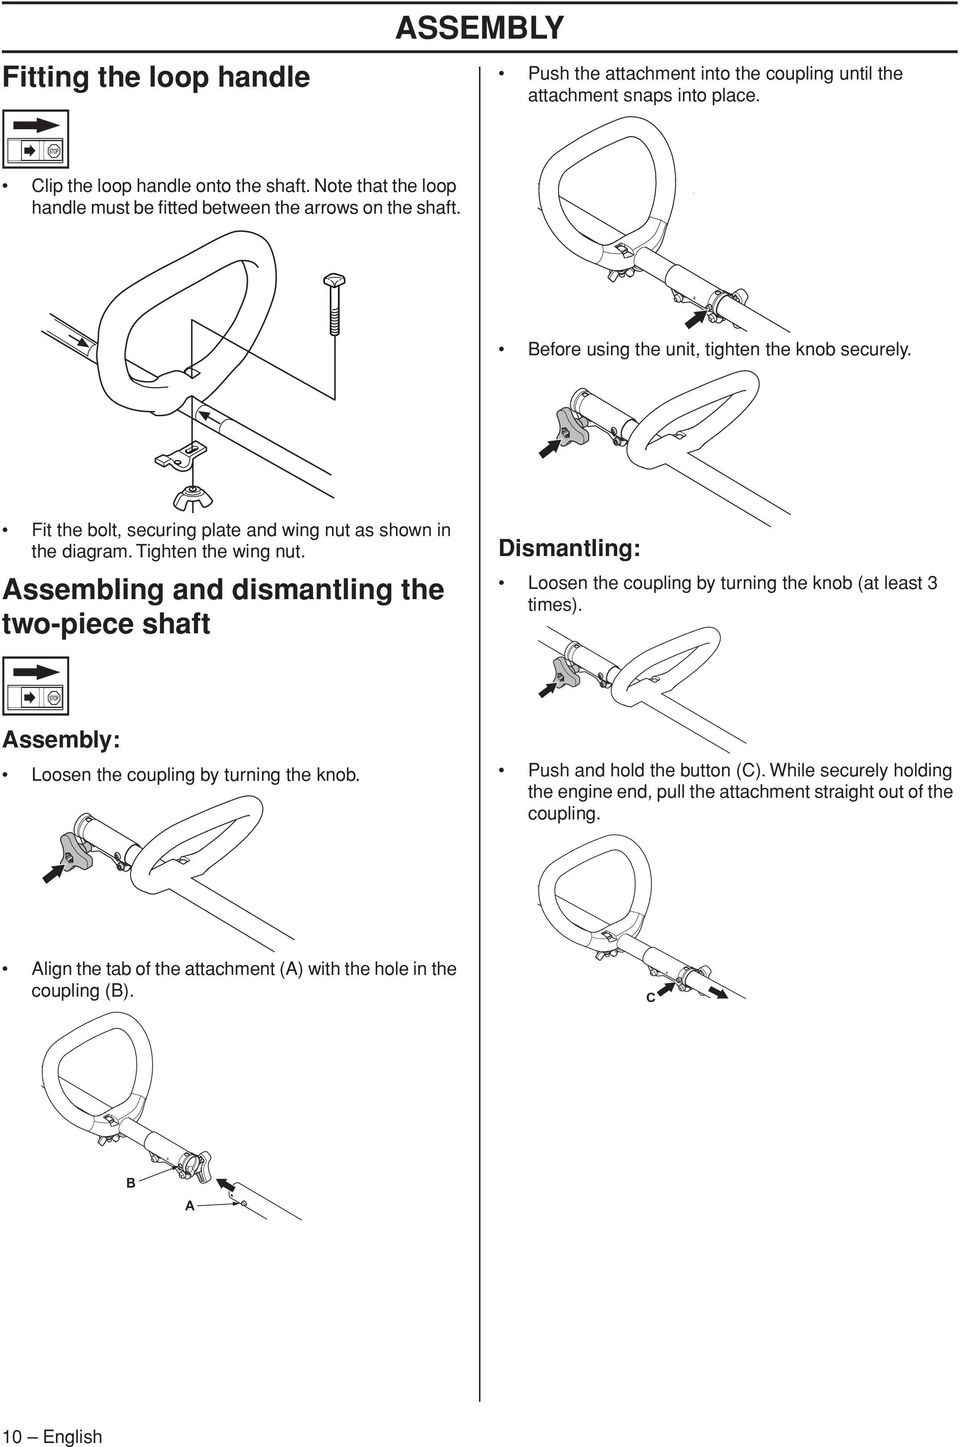 Fit the bolt, securing plate and wing nut as shown in the diagram. Tighten the wing nut.